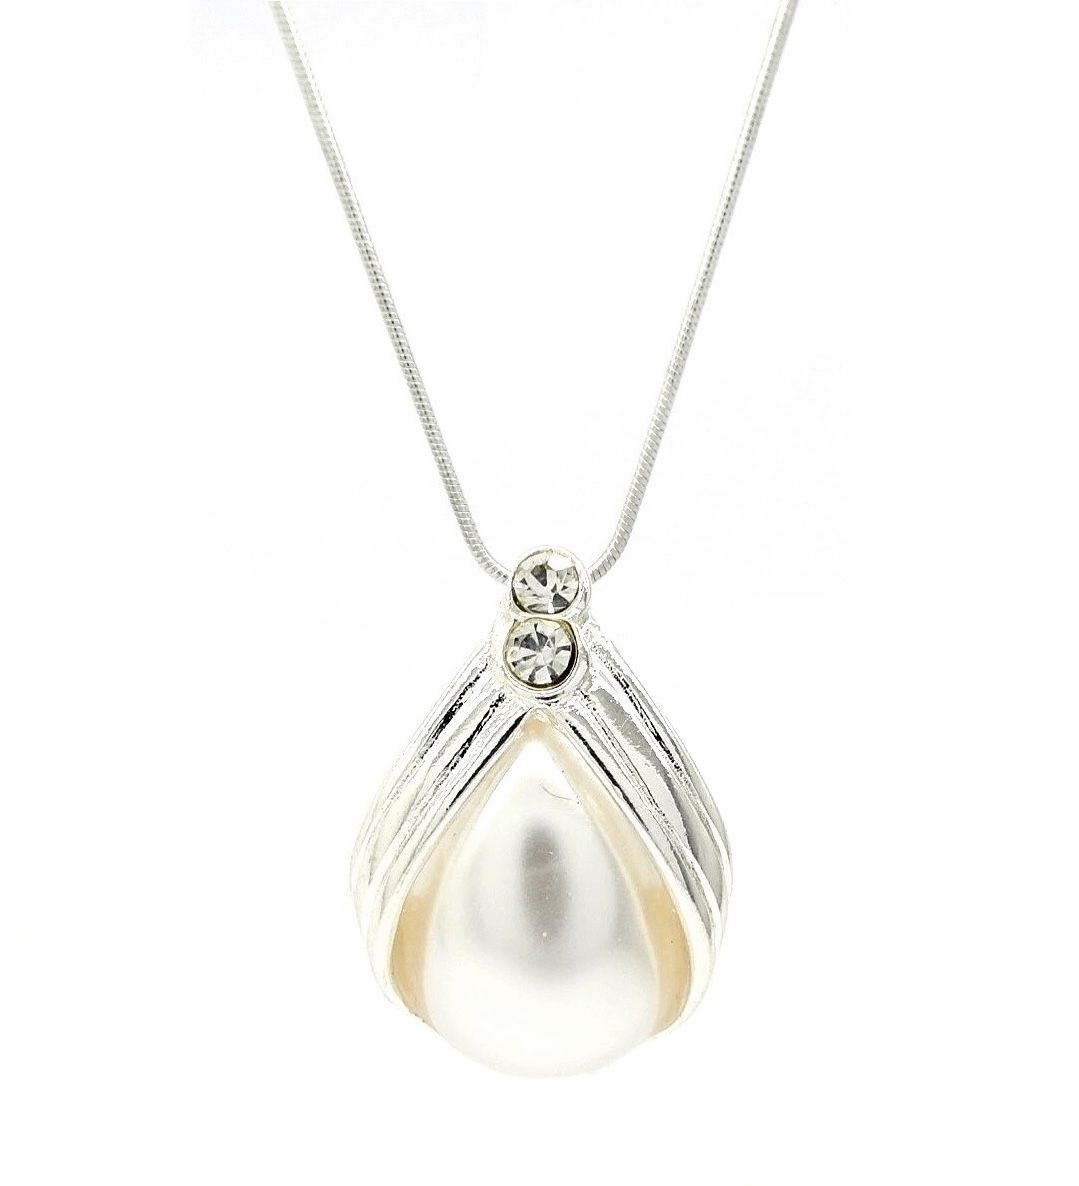 Bridal simple contemporary pearl pendant necklace great gift idea mozeypictures Image collections